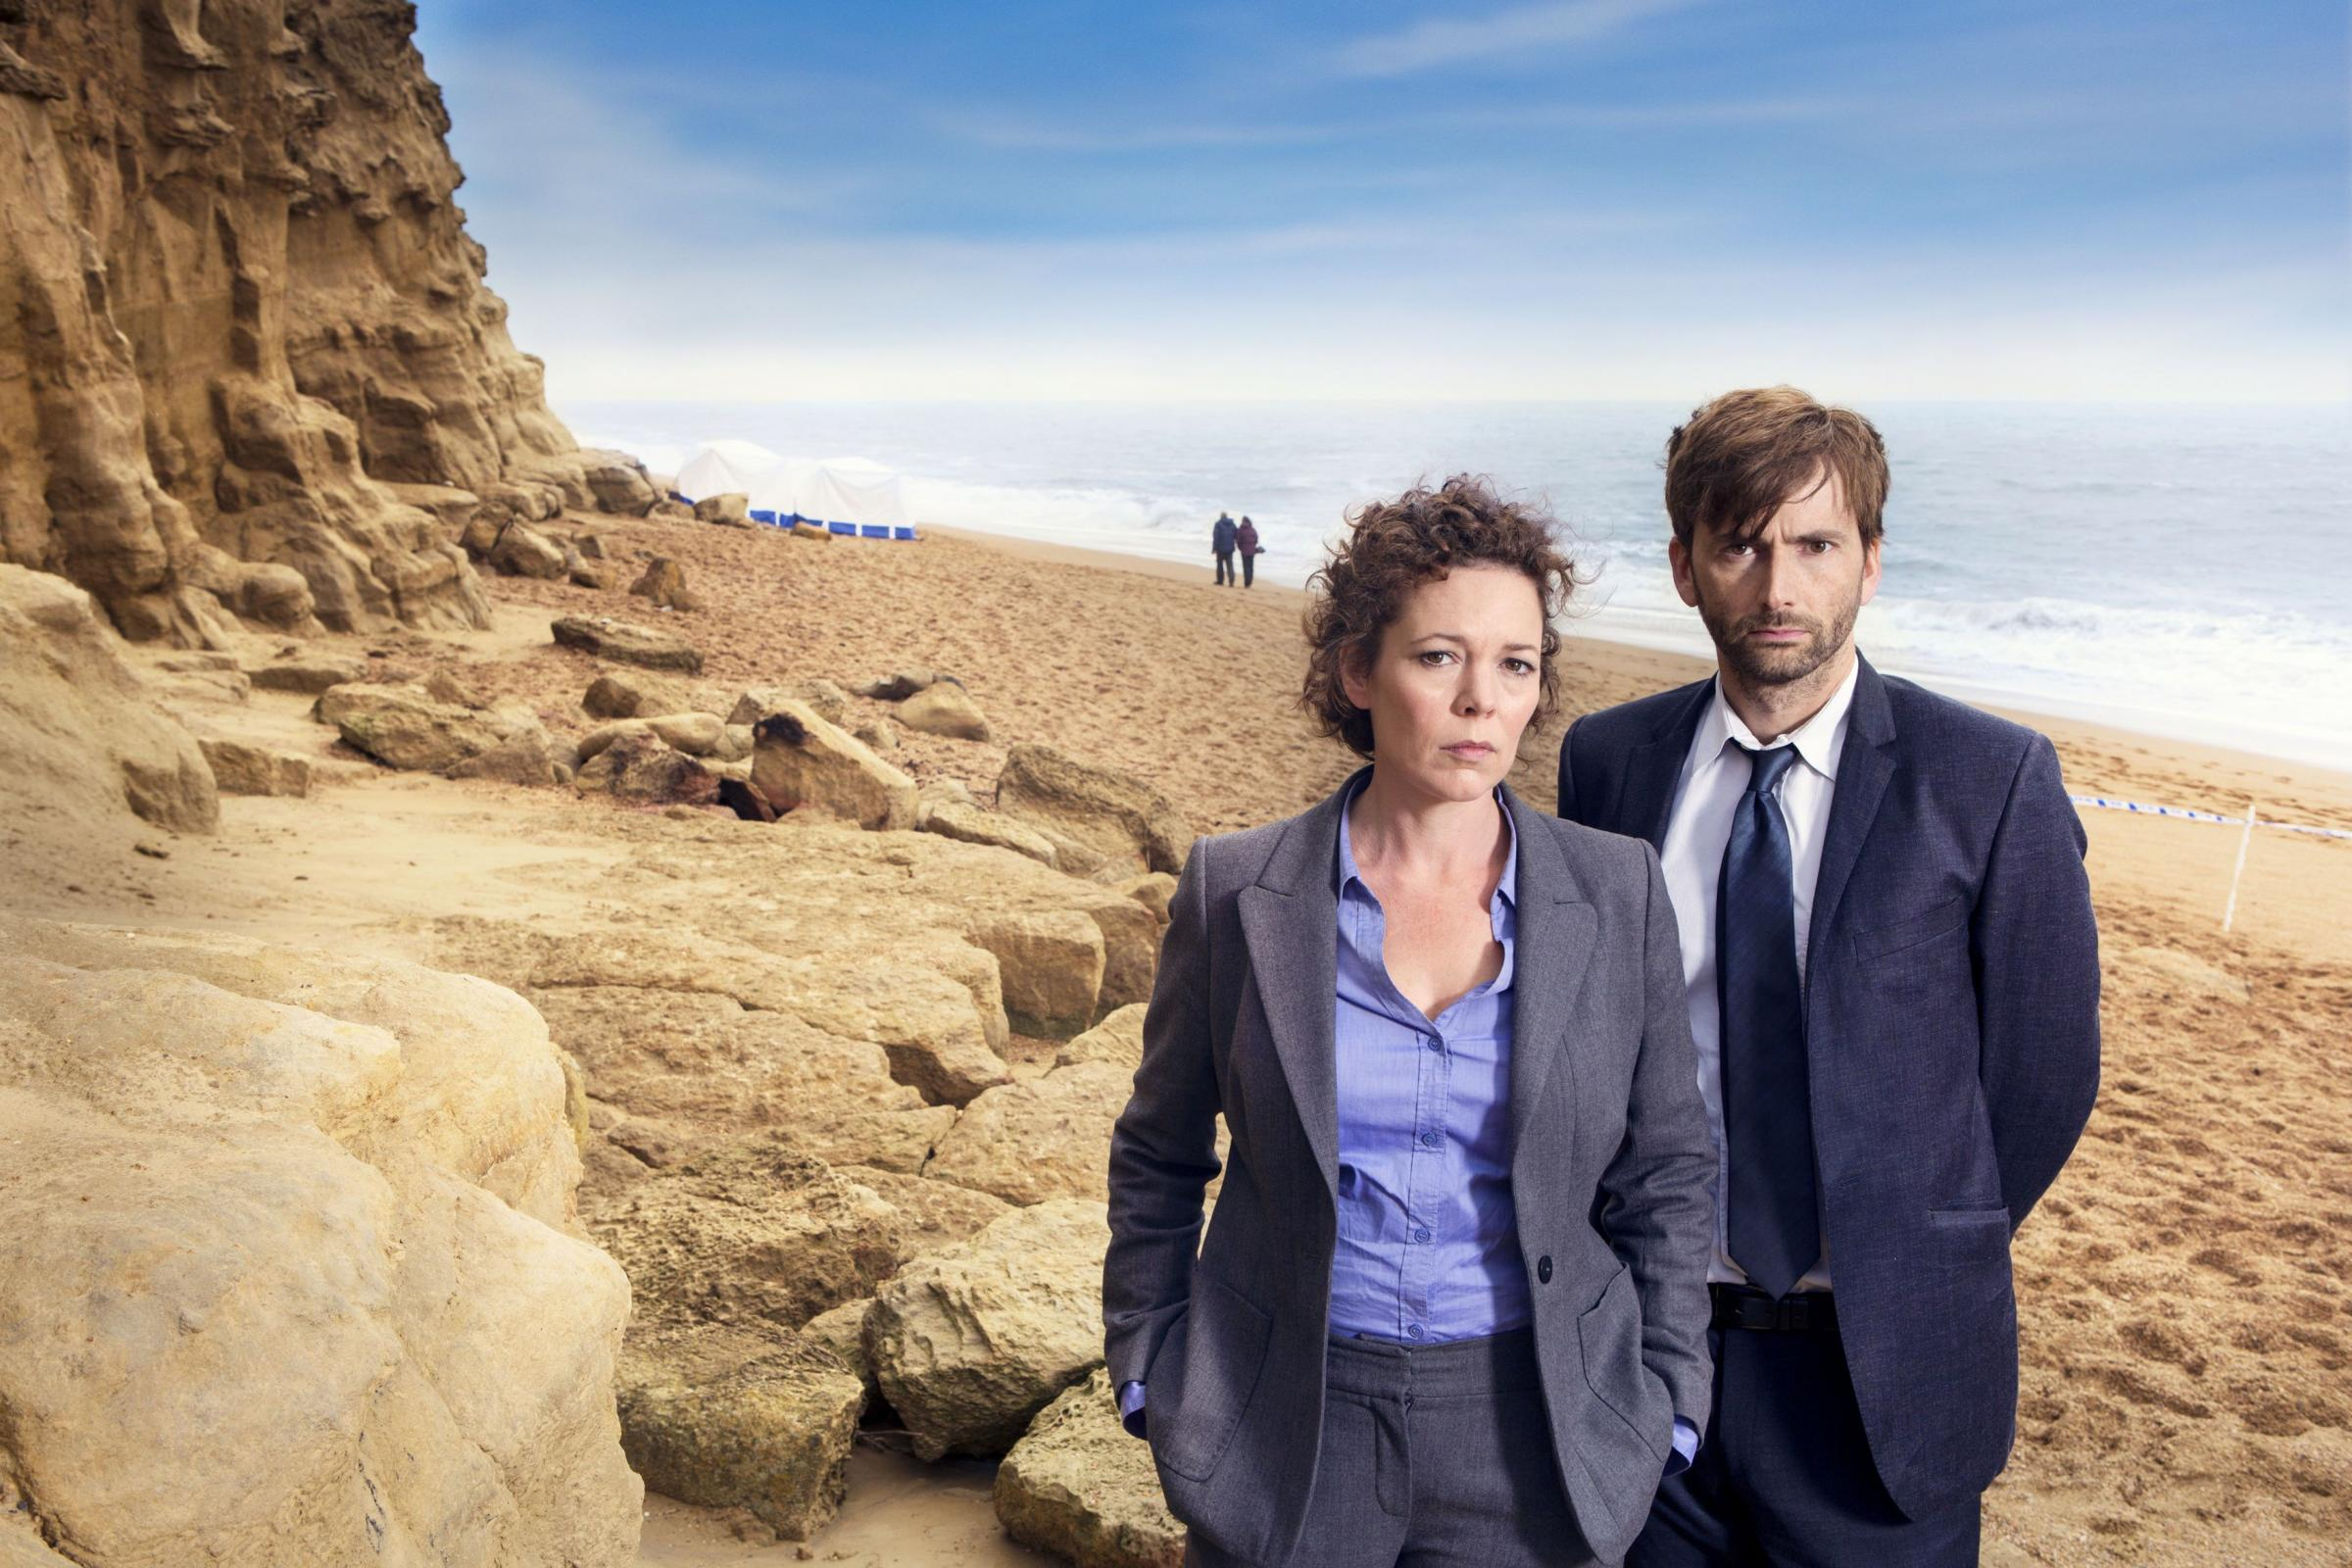 Olivia Colman and David Tennant in Broadchurch. The pre-emptive praise the ITV show attracted overlooked the fact it portrays an atypical rape case